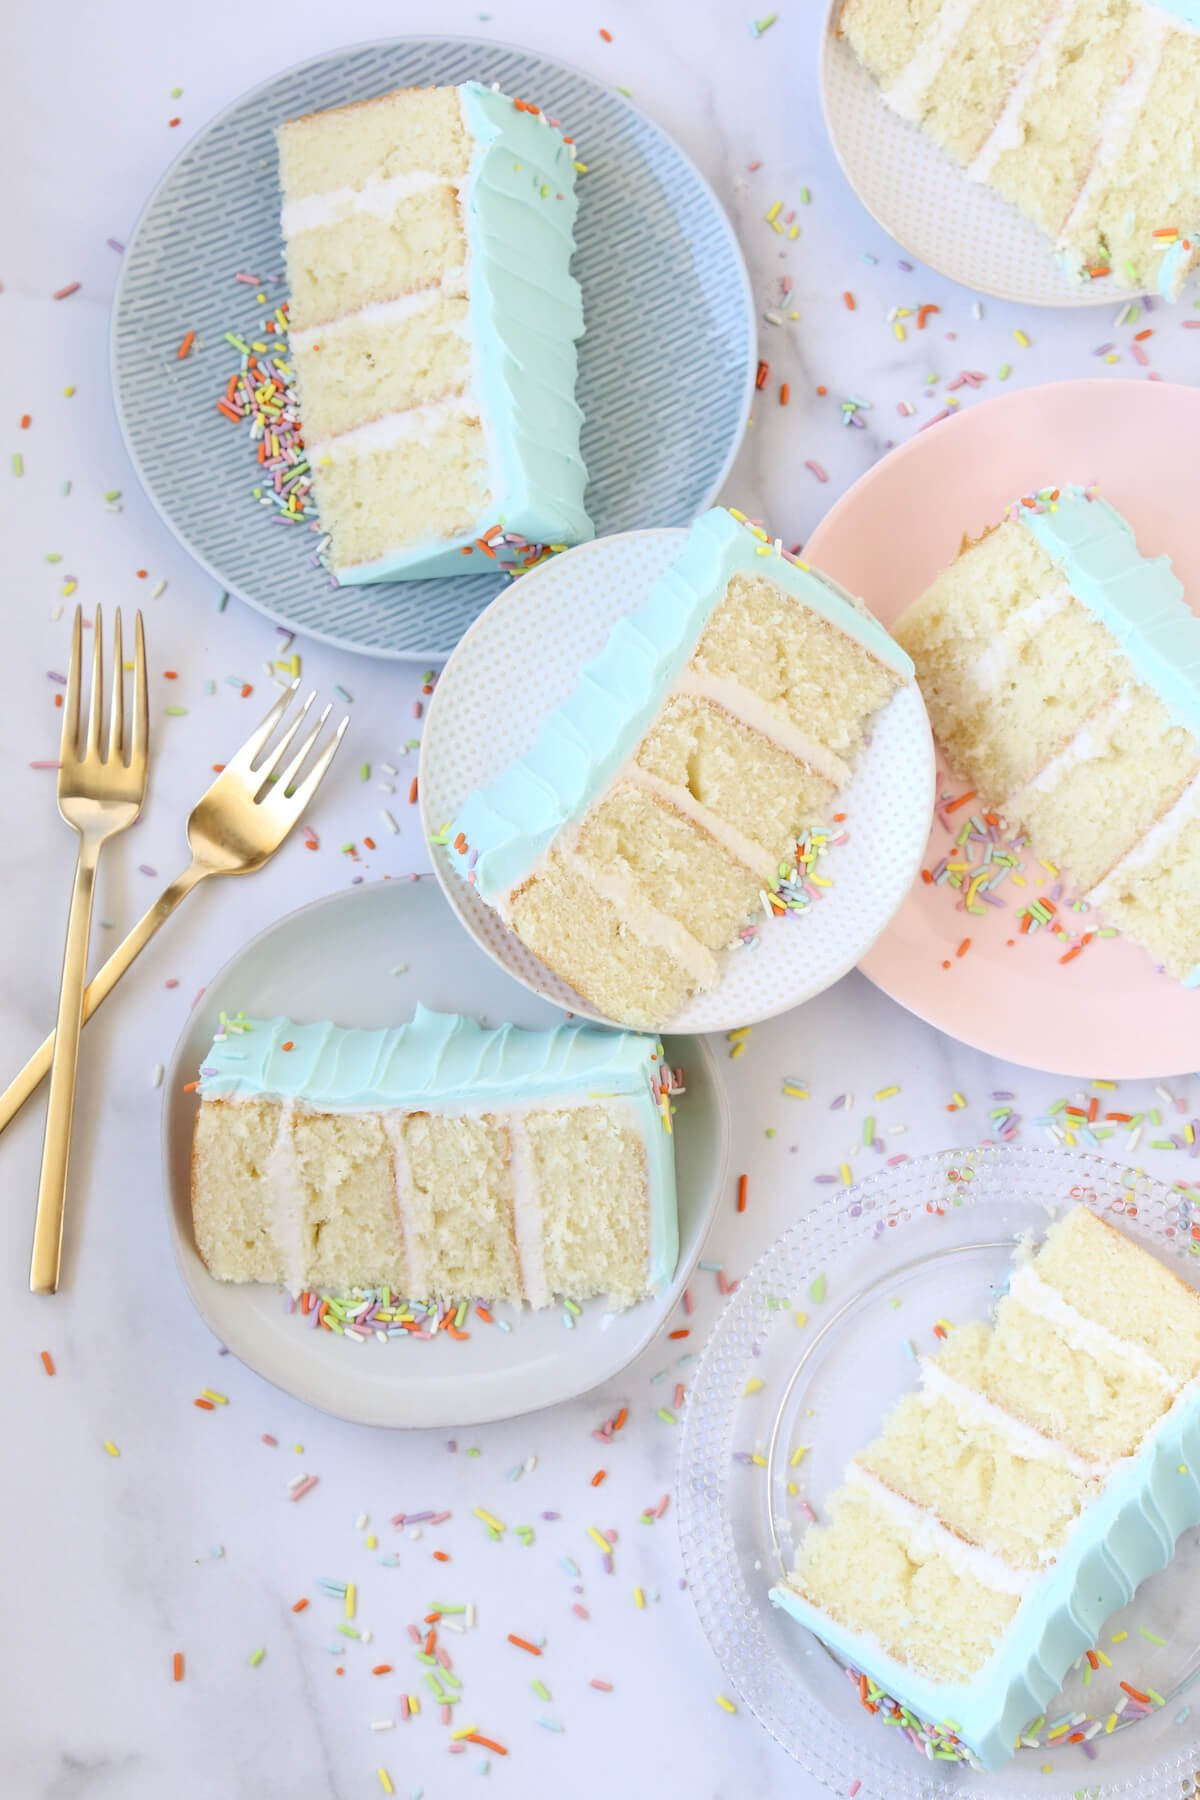 five dessert plates with slices of cake on each, surrounded by sprinkles and two gold forks.